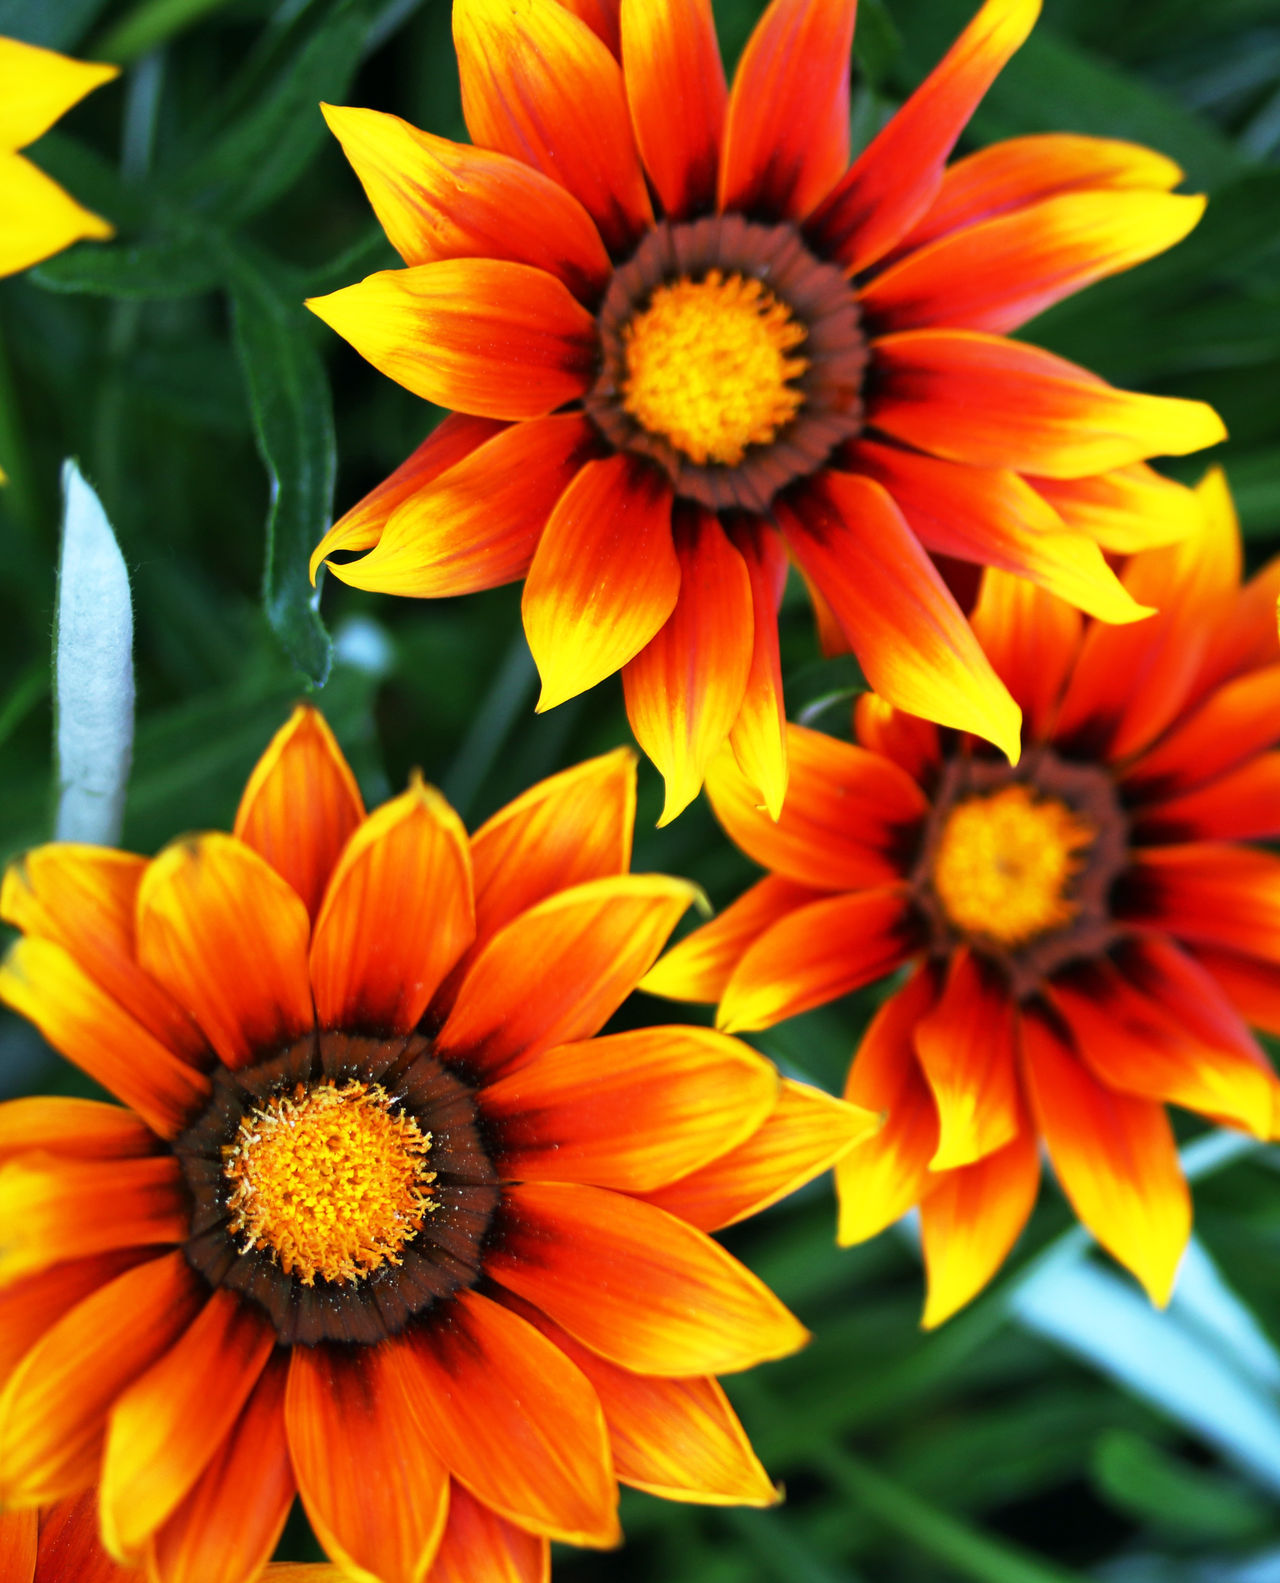 Beauty In Nature Close-up Day Flower Flower Head Nature No People Orange Color Outdoors Petal Yellow Yellow Red Daisies